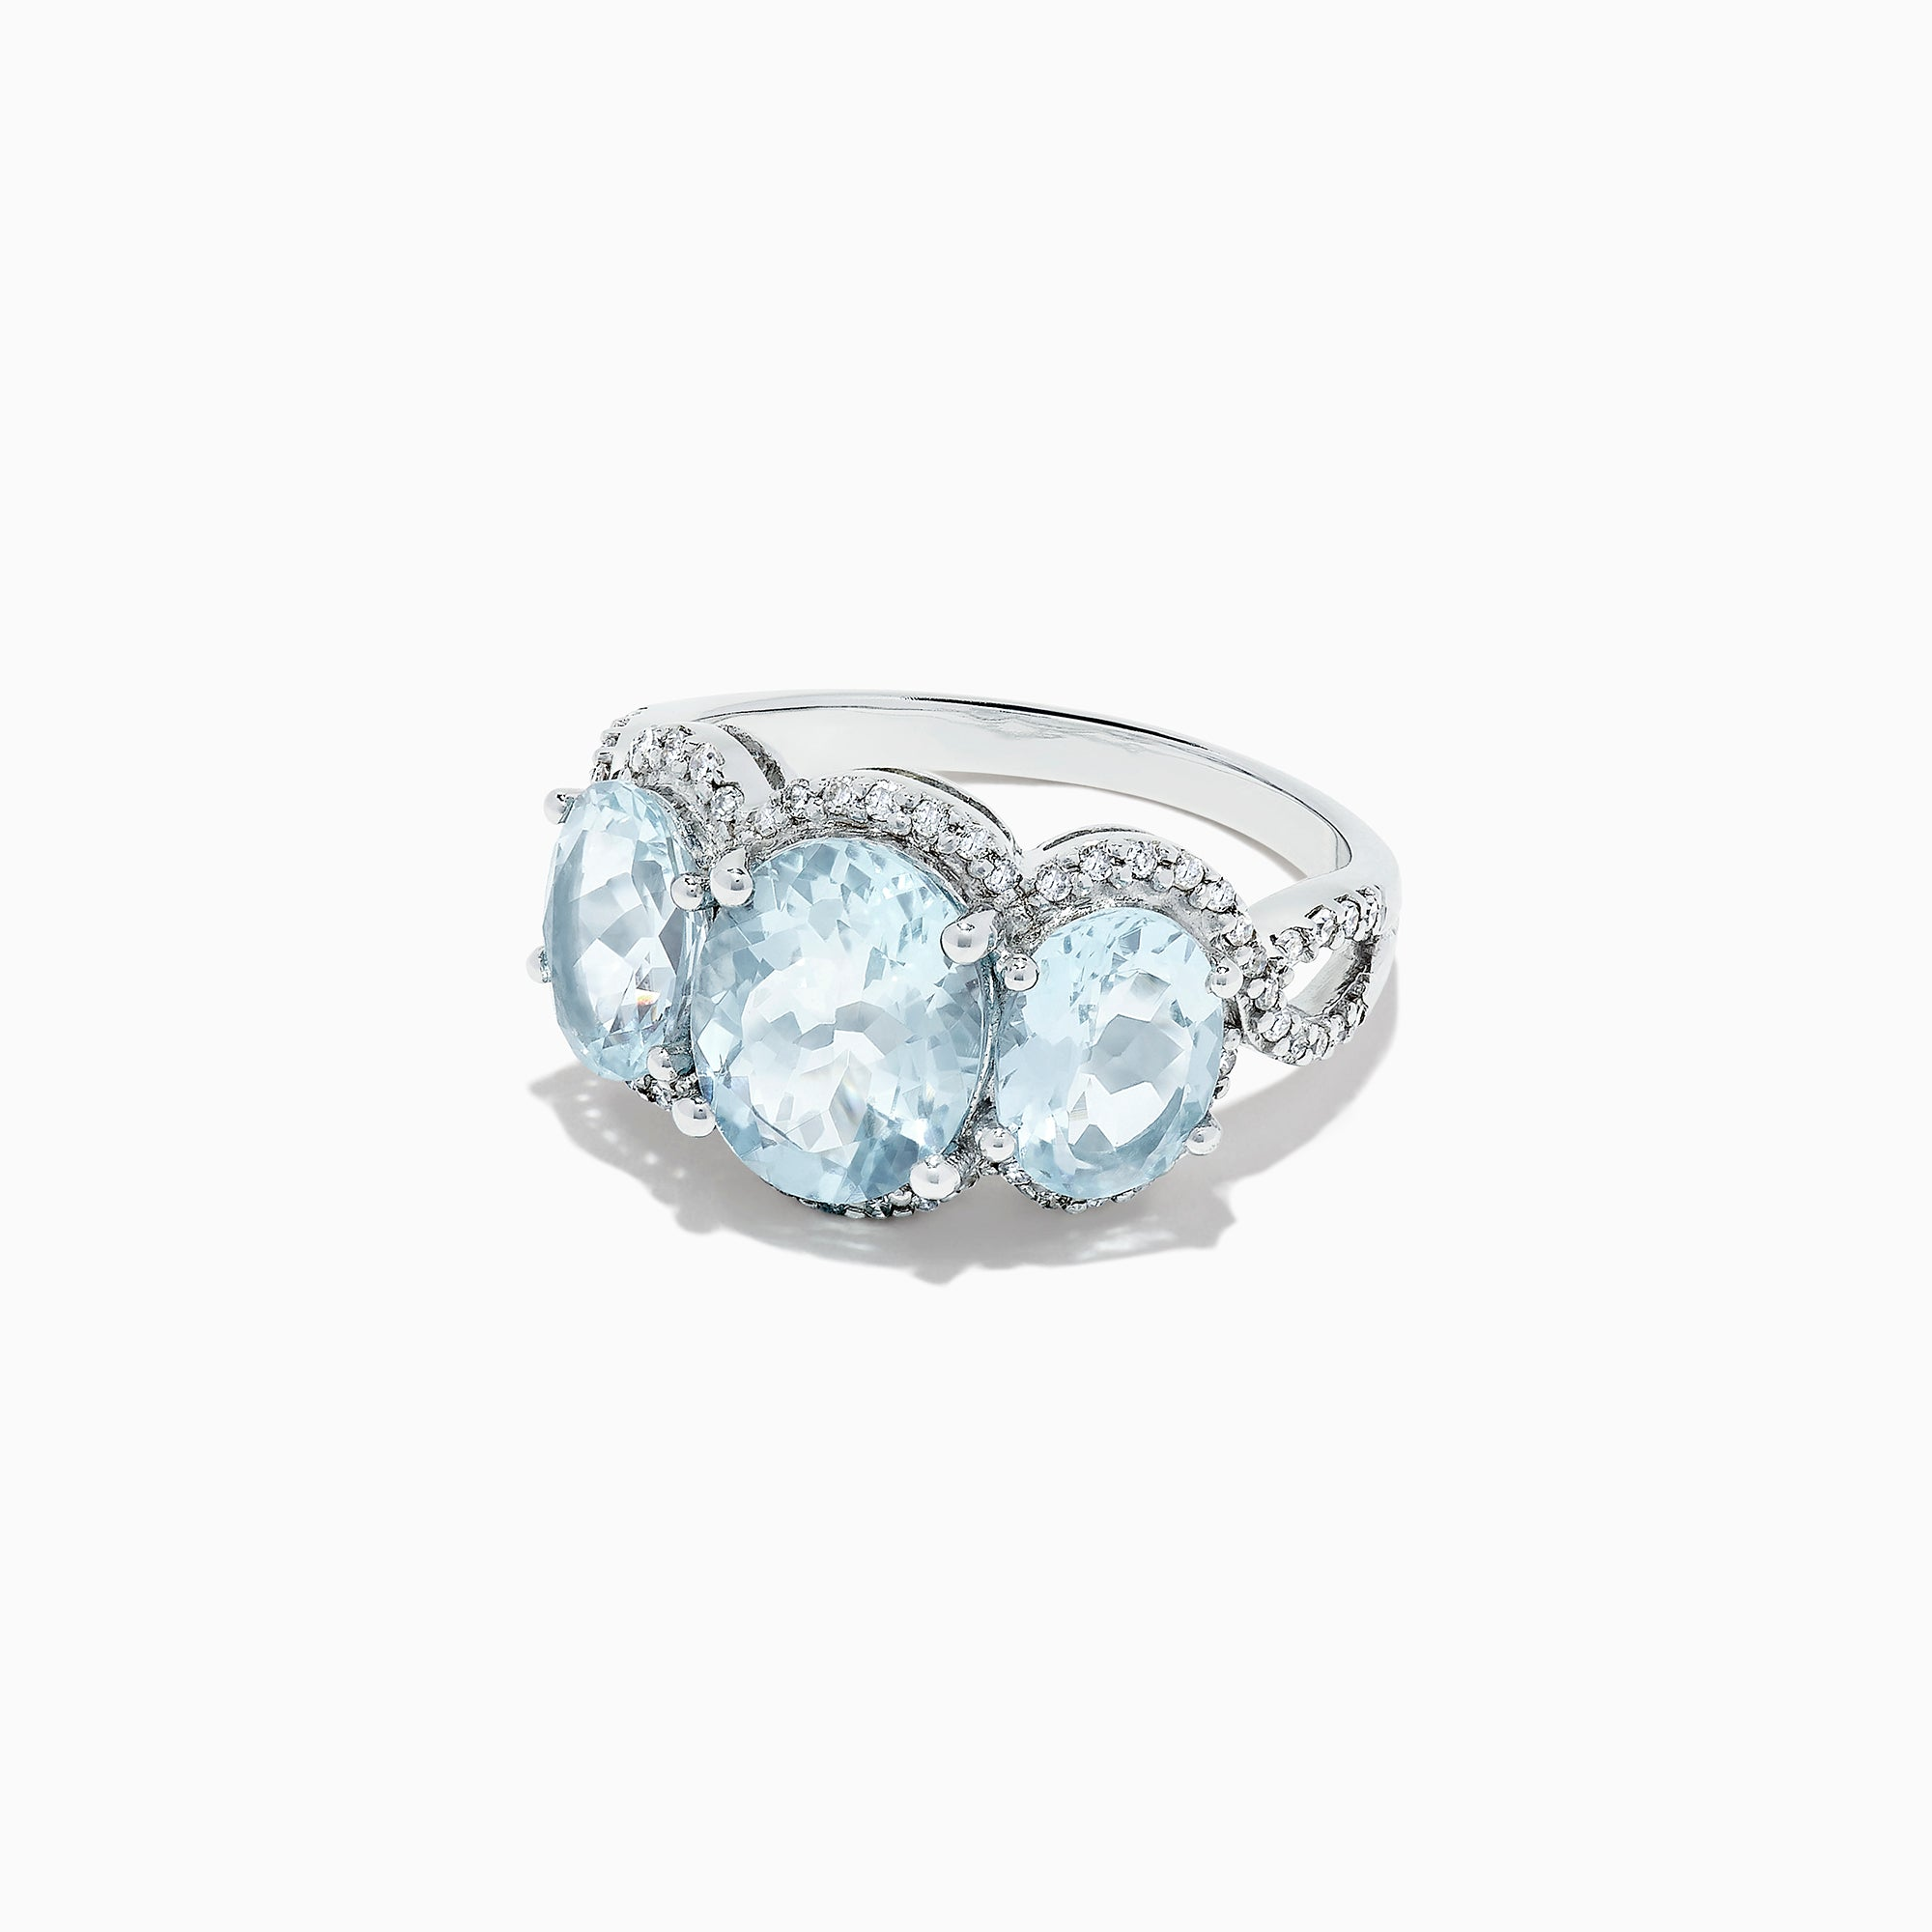 Effy 14K White Gold Aquamarine and Diamond Ring, 4.19 TCW